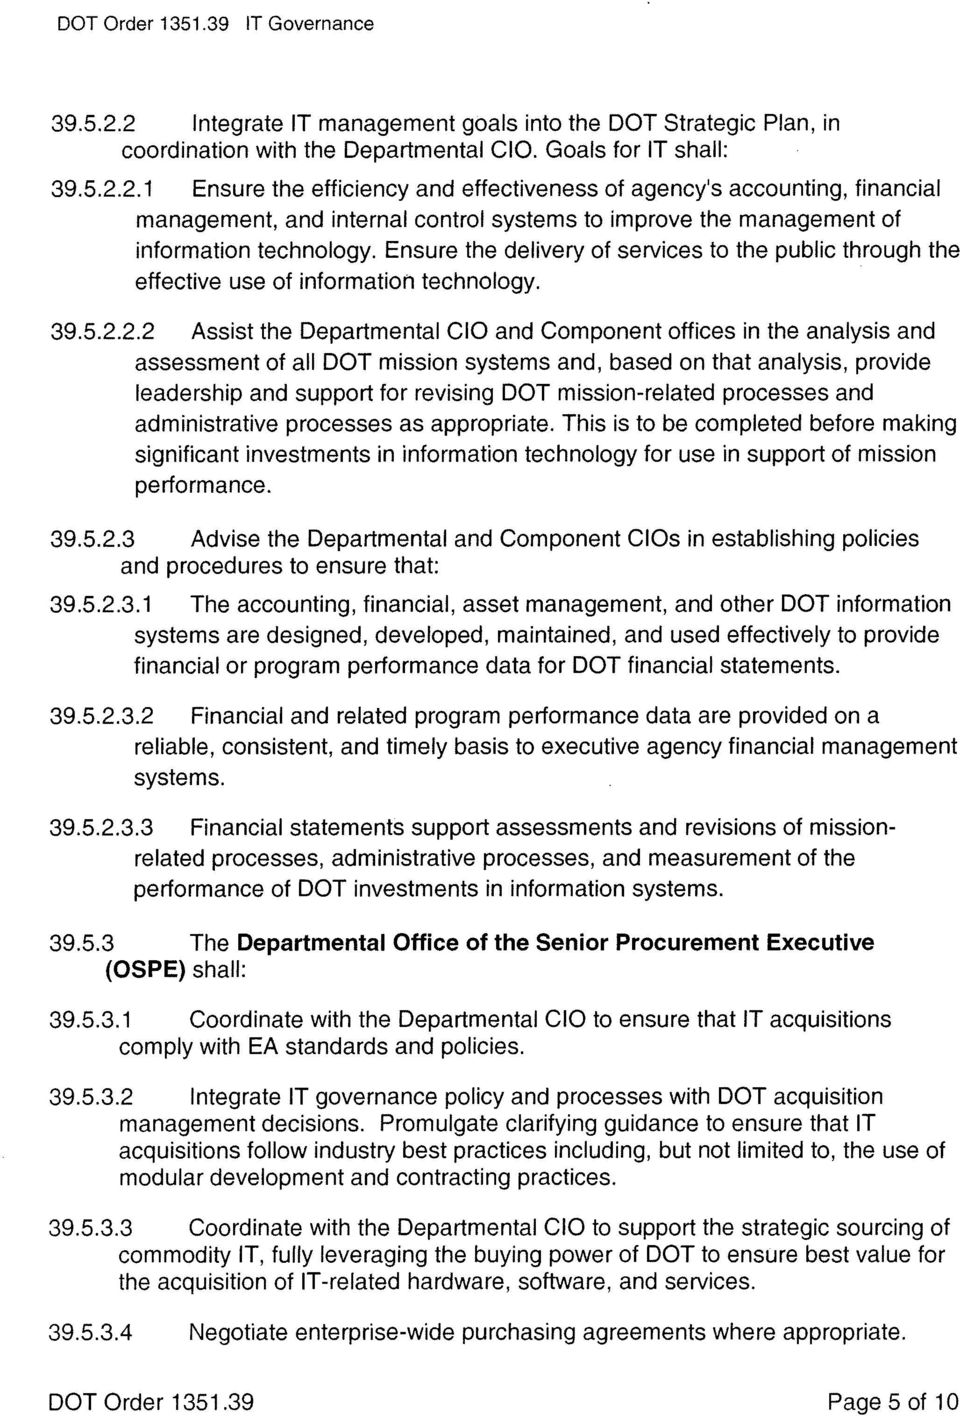 2.2 Assist the Departmental CIO and Component offices in the analysis and assessment of all DOT mission systems and, based on that analysis, provide leadership and support for revising DOT